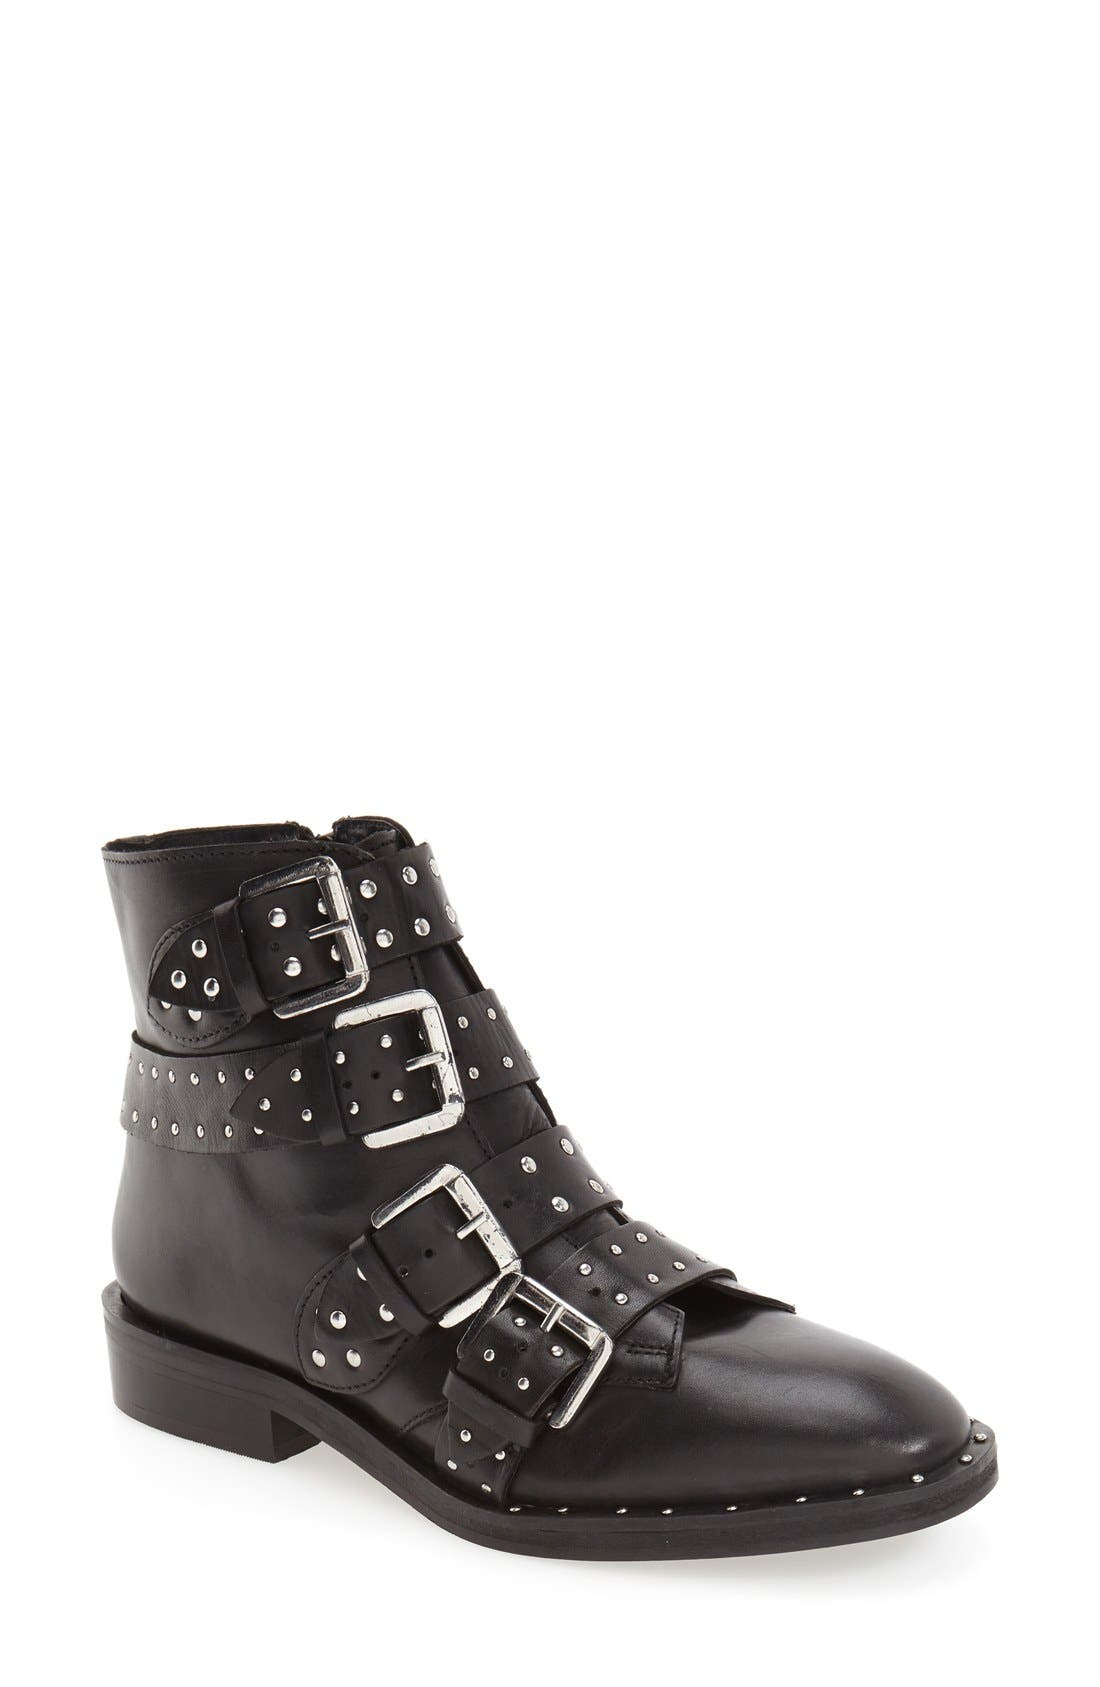 TOPSHOP 'Amy' Studded Buckle Bootie, Main, color, 001